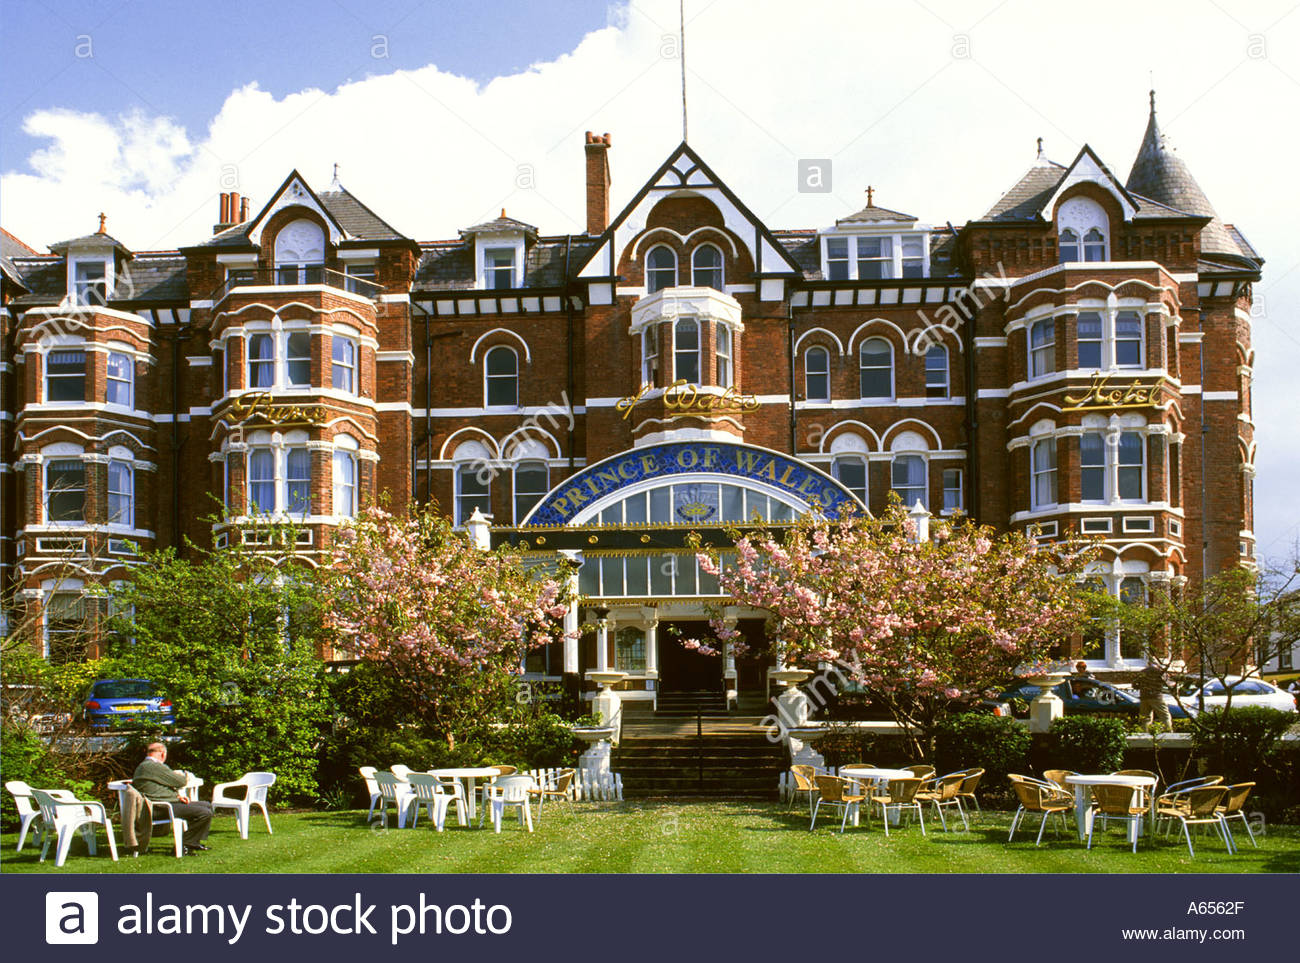 Prince of Wales Hotel, Lord Street, Southport, Merseyside, England, UK - Stock Image